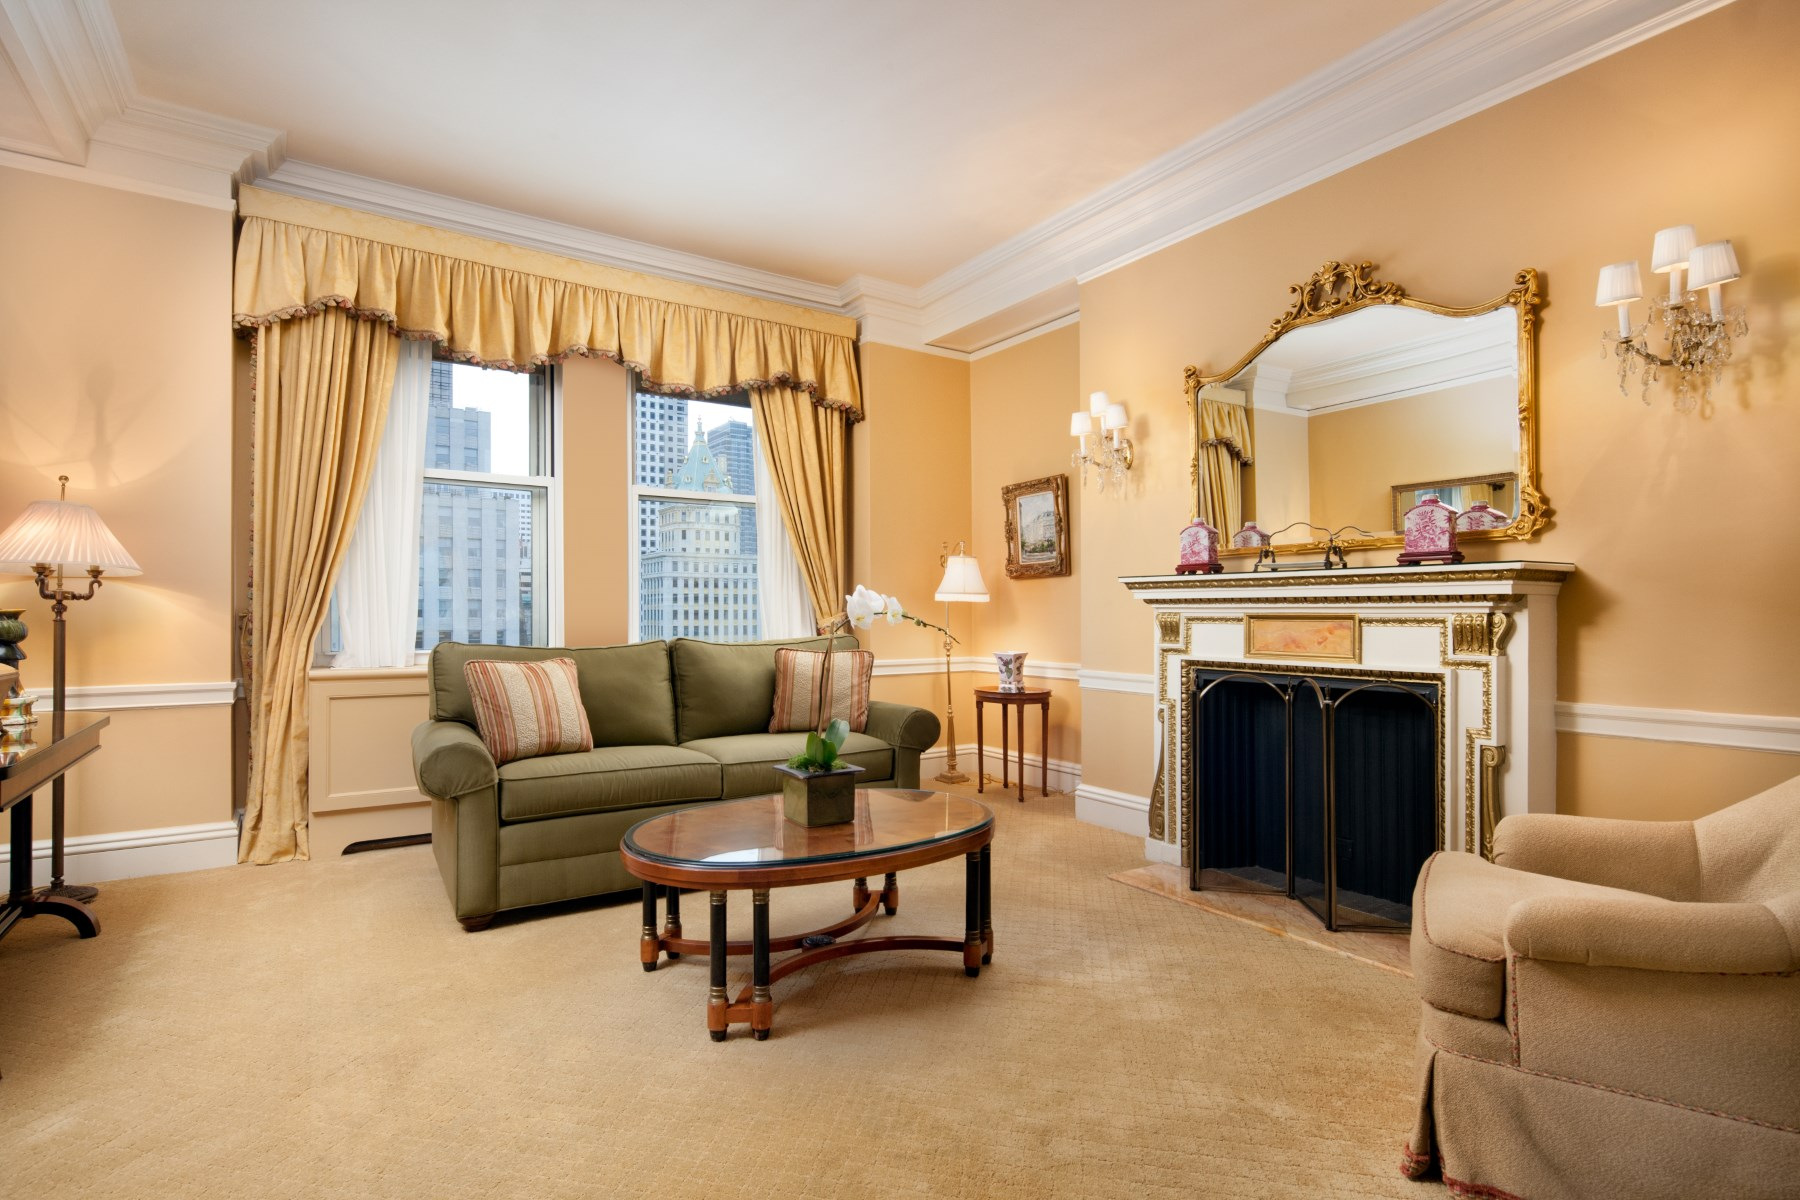 Co-op for Sale at 781 Fifth Avenue, Apt 2107 781 Fifth Avenue Apt 2107 Upper East Side, New York, New York 10022 United States